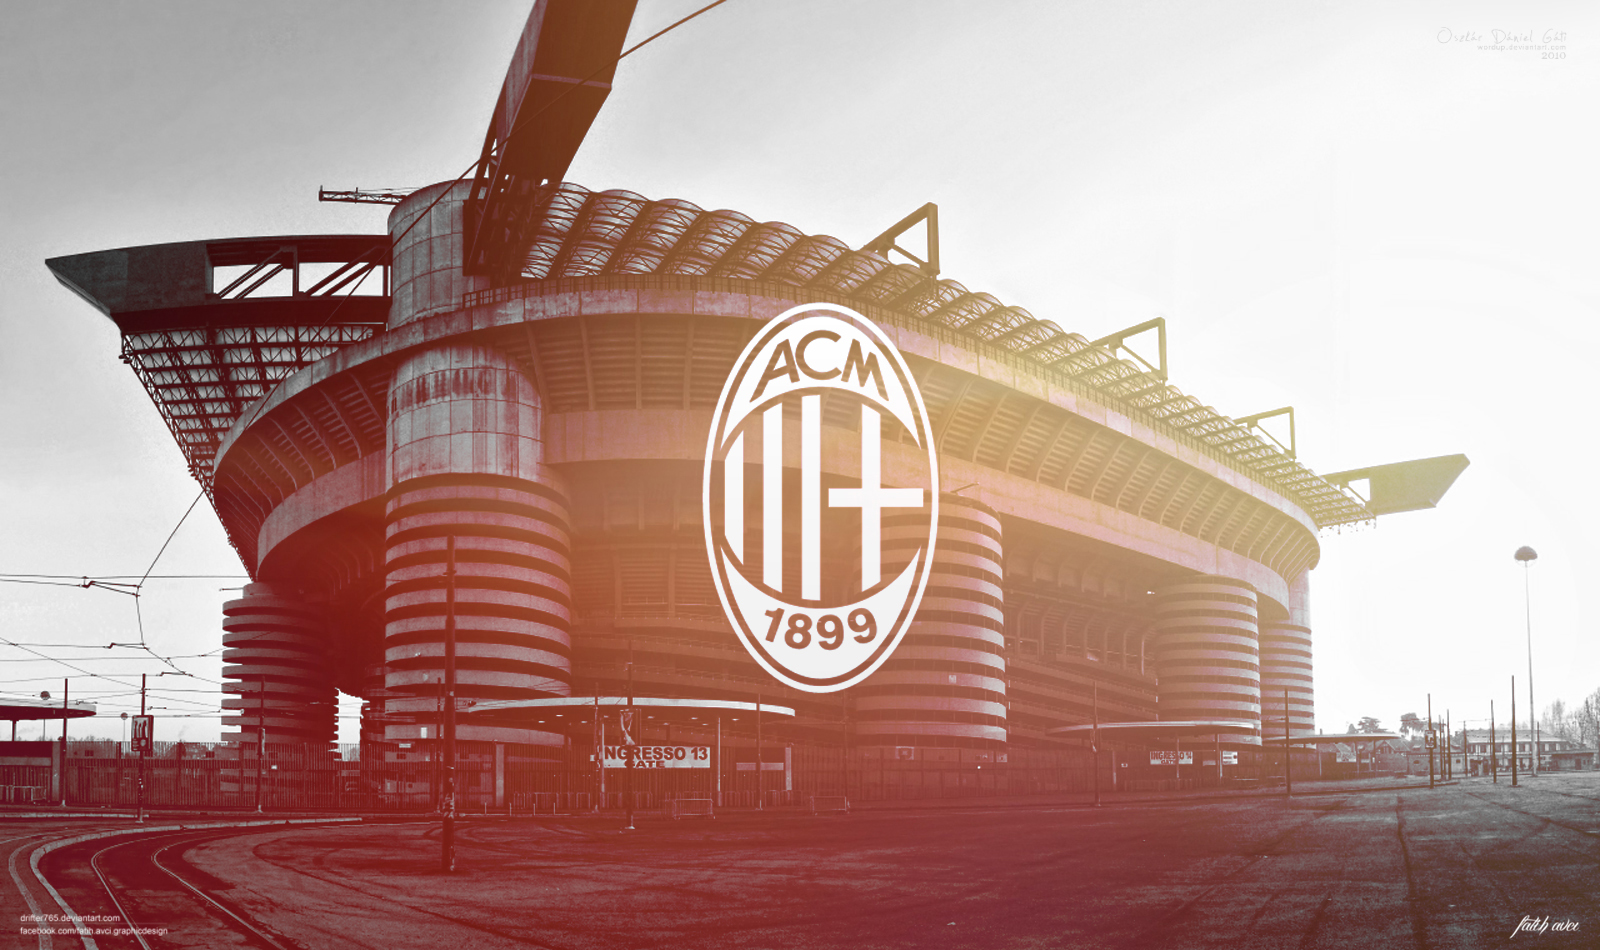 Hd wallpaper ac milan - Ac Milan By Drifter765